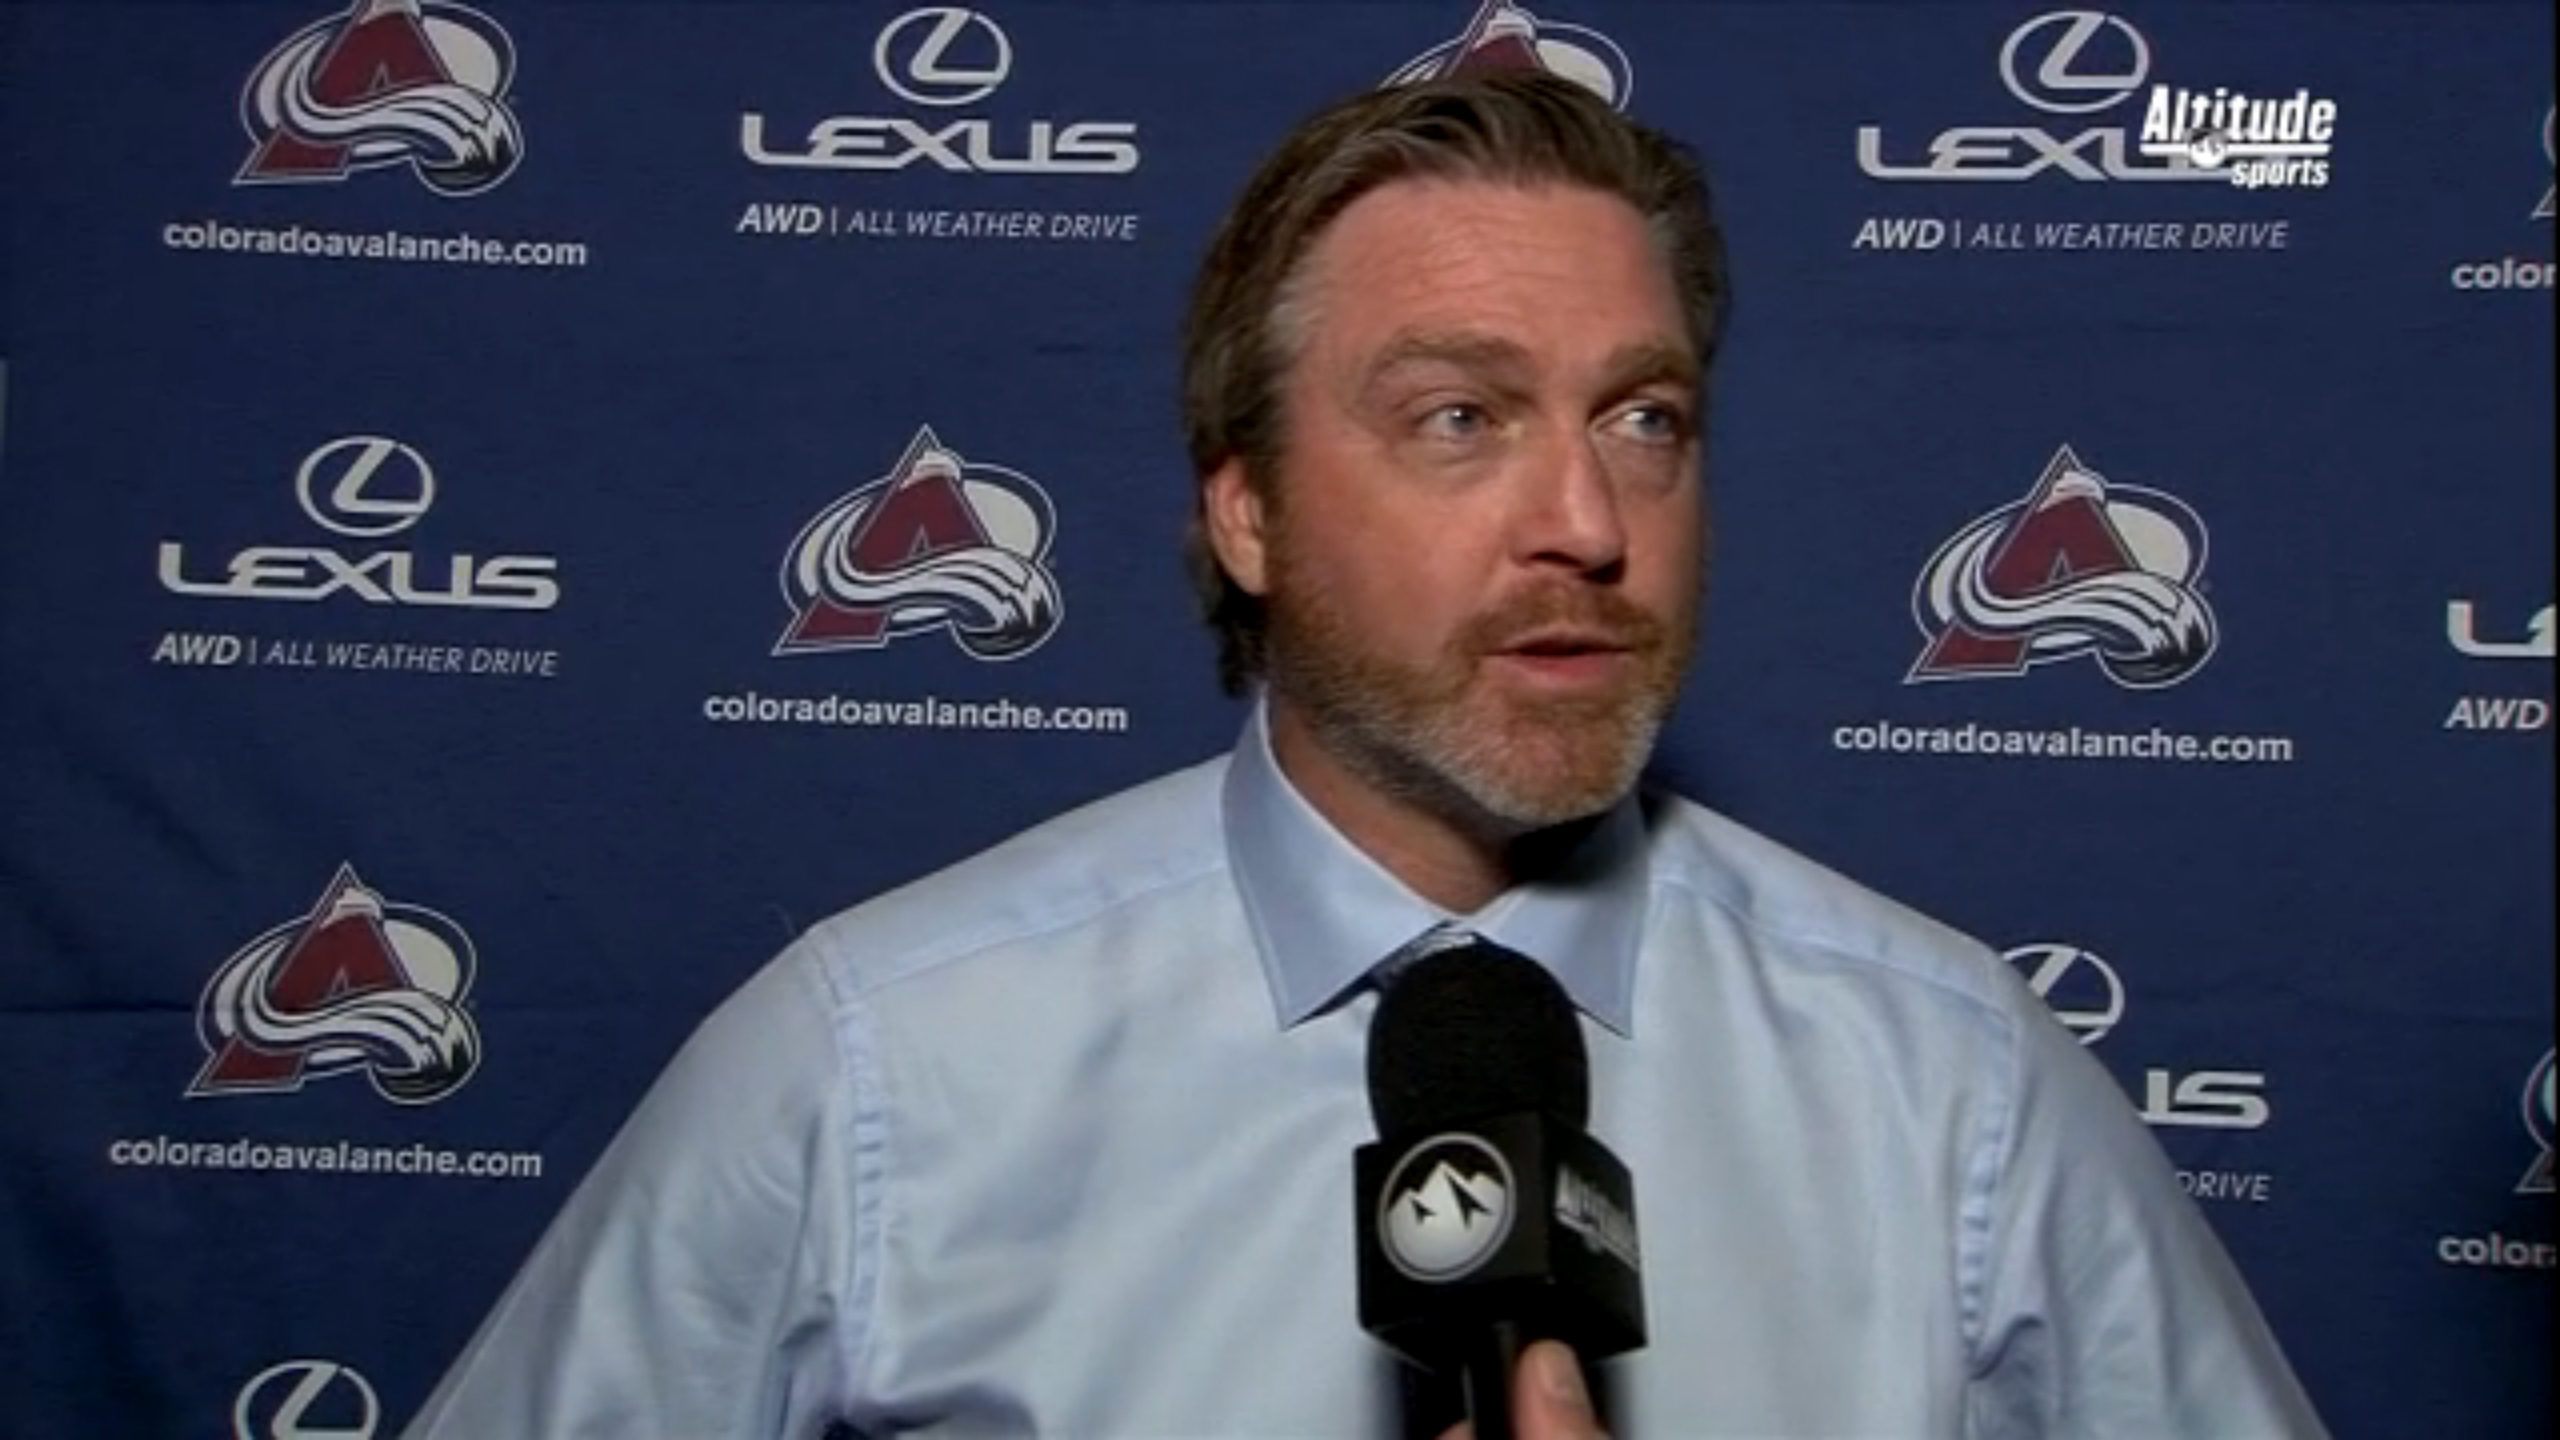 Patrick-Roy-Interview-10-29-15.jpg